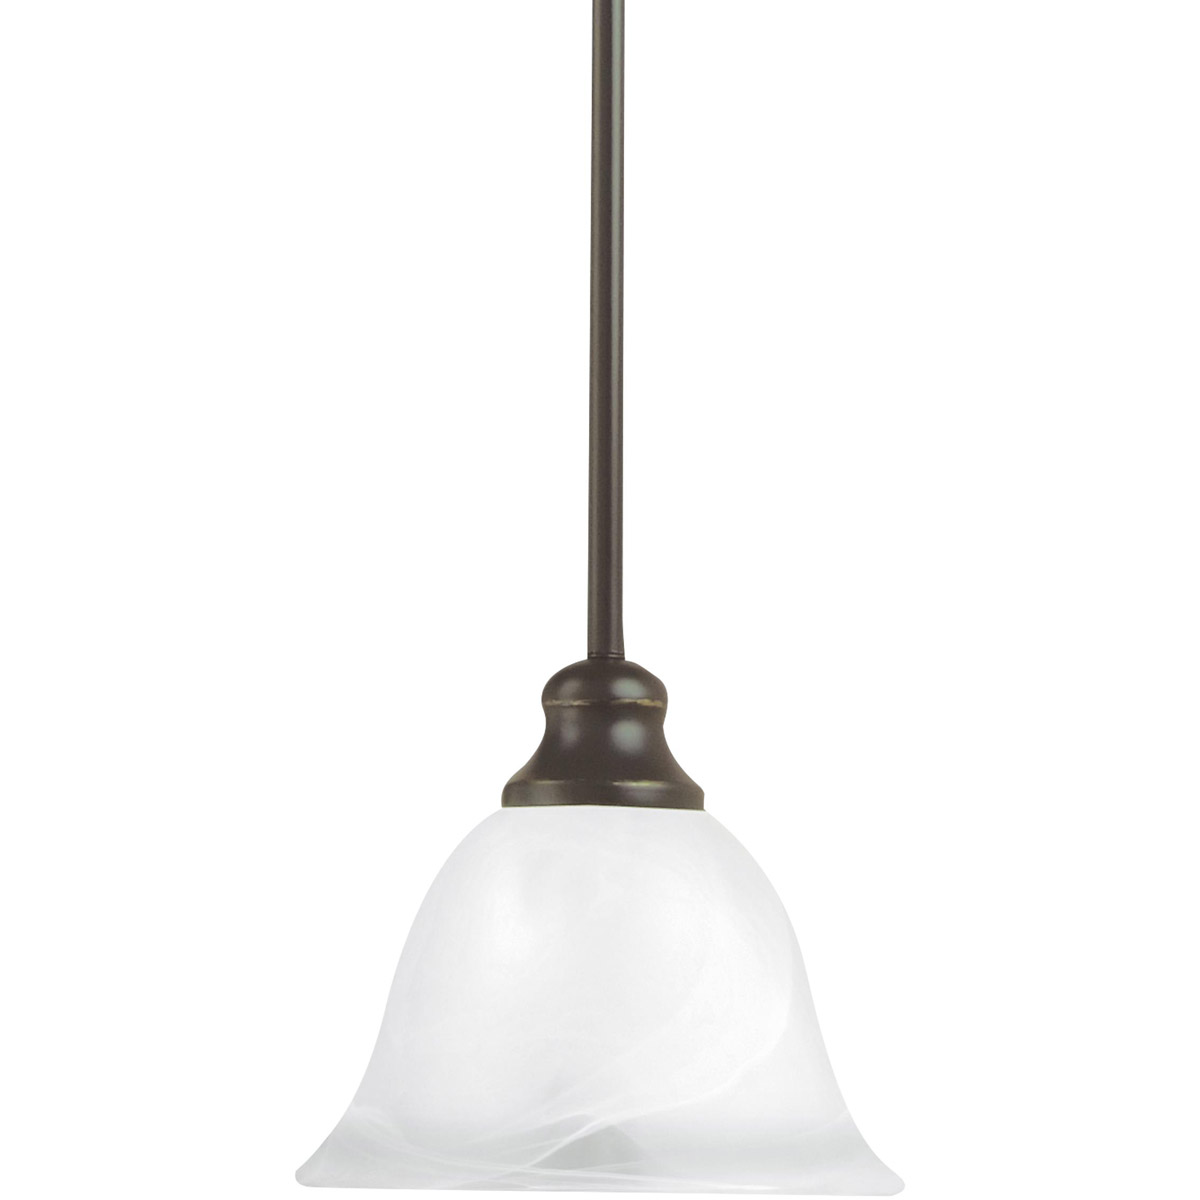 Sea Gull Lighting Windgate 1 Light Mini Pendant in Heirloom Bronze 61940-782 photo